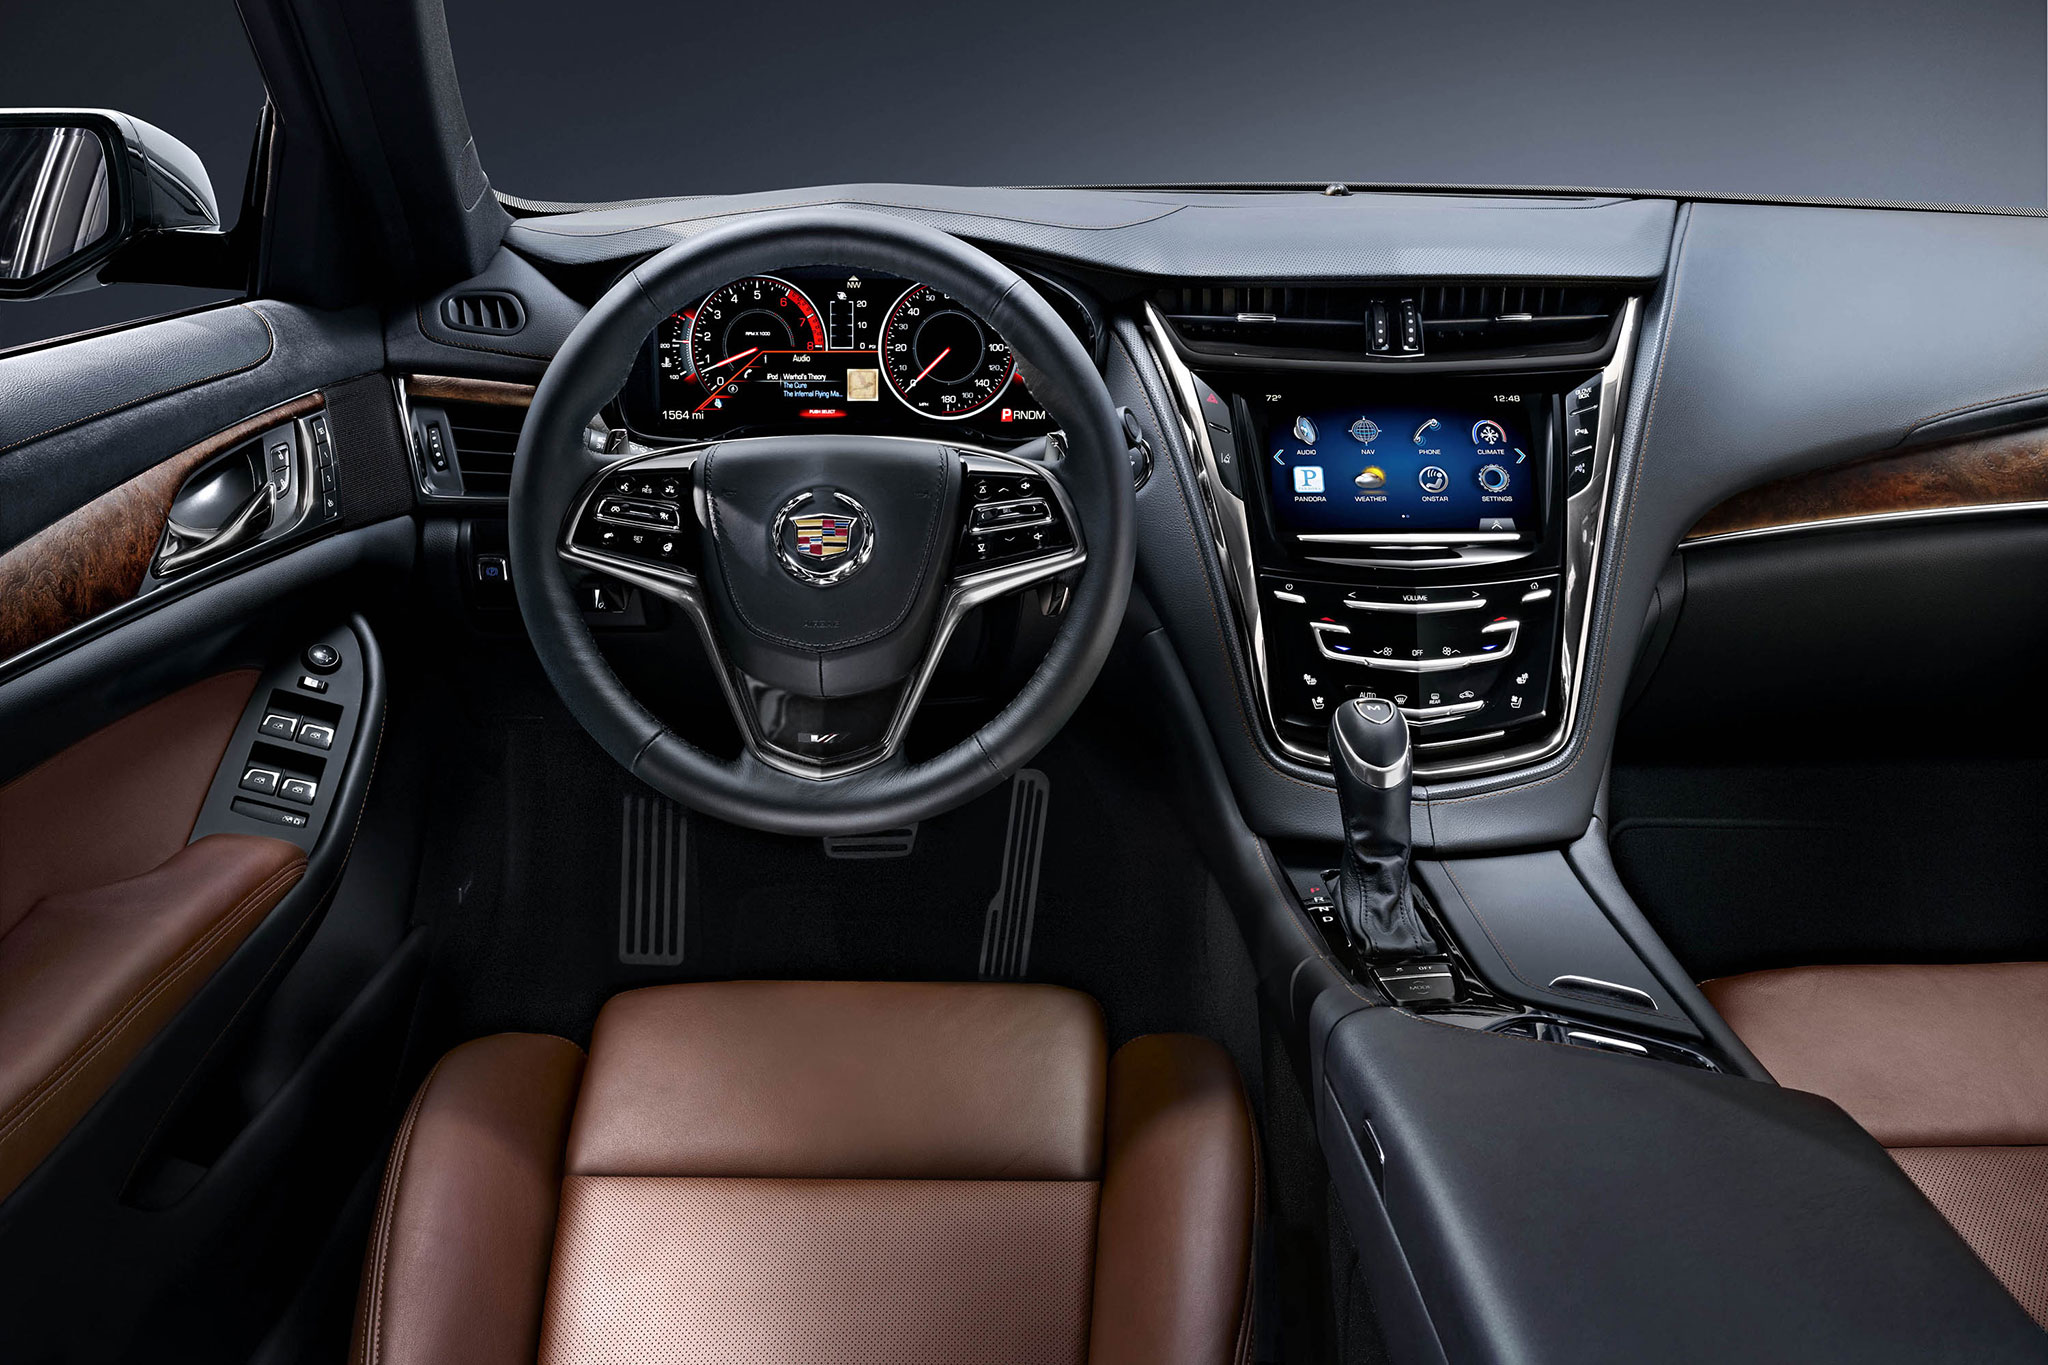 2014 cadillac cts vsport first drive automobile magazine 2014 cadillac cts 18222 sciox Images